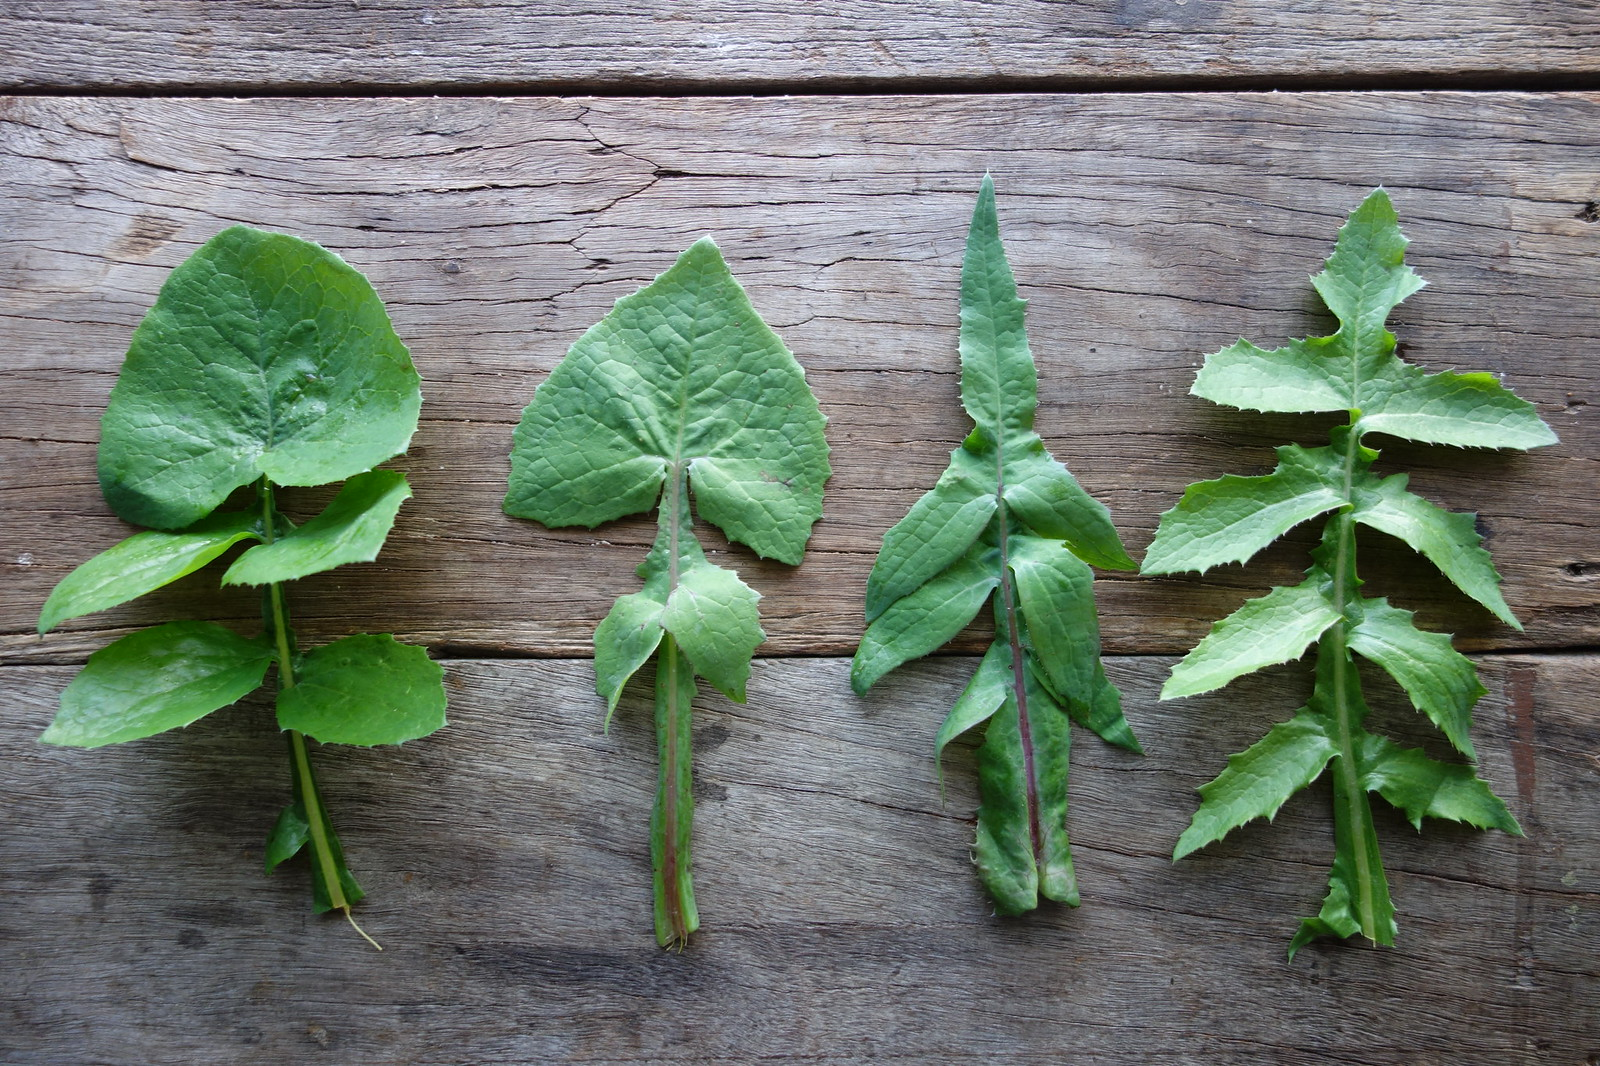 sow thistle leaves (younger, left, to older, right)